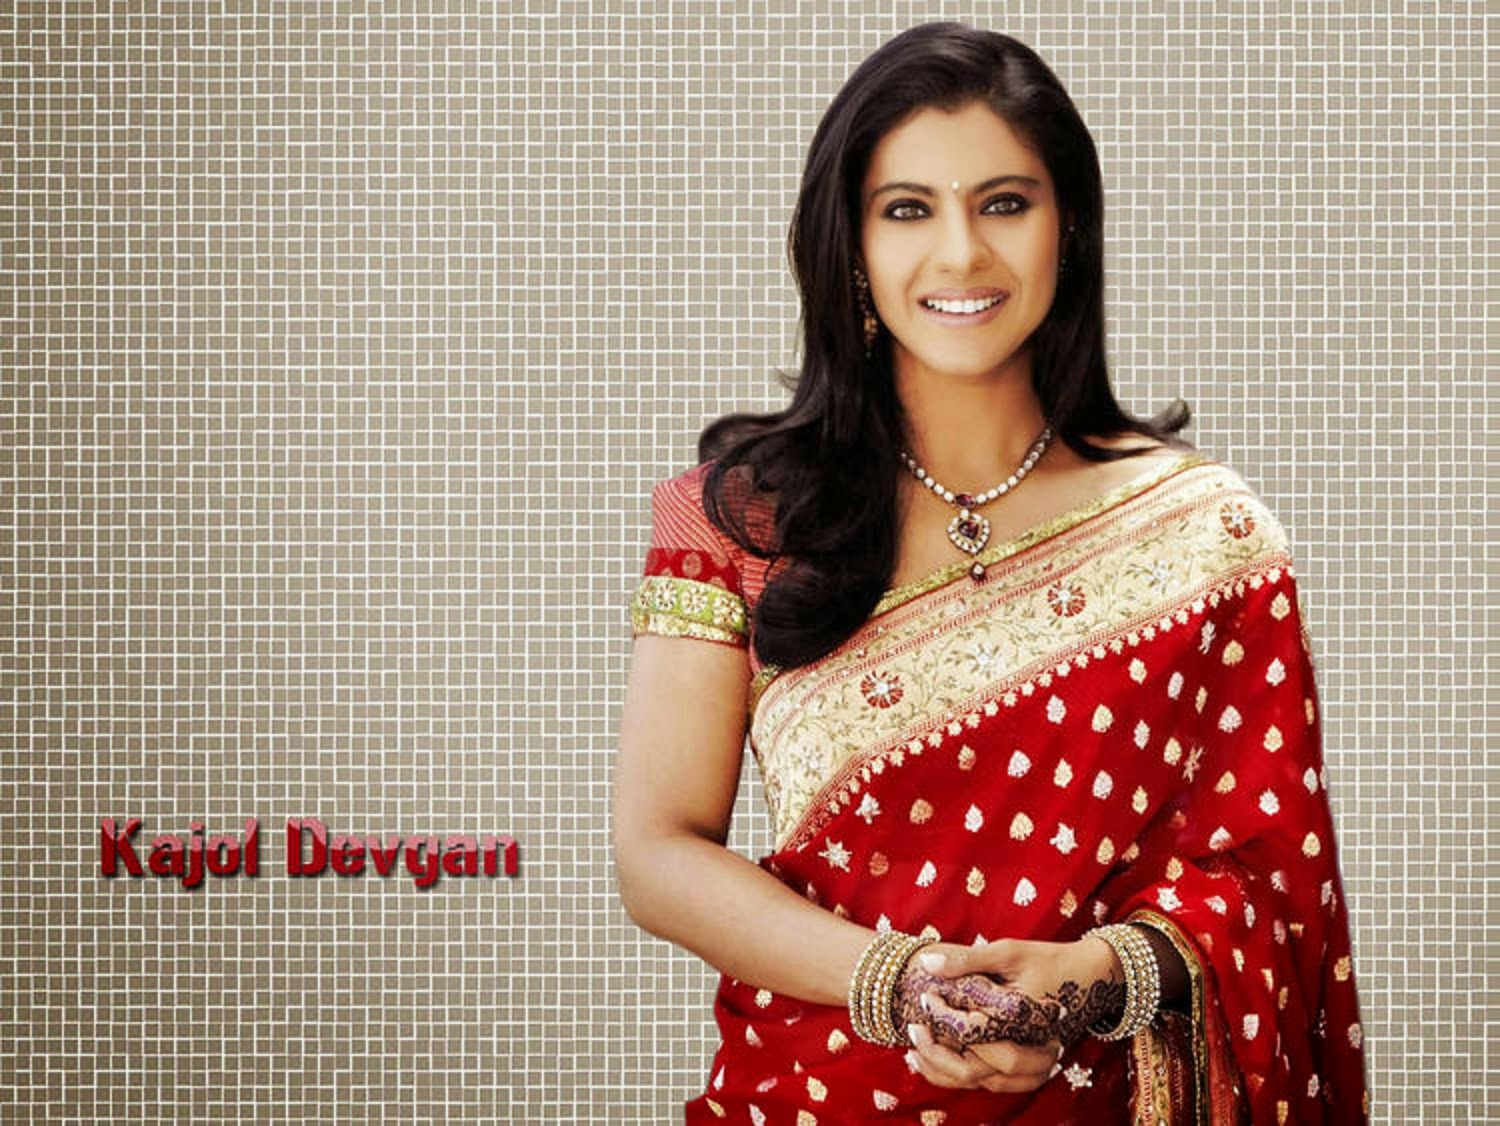 Kajol Devgan HD Wallpaper